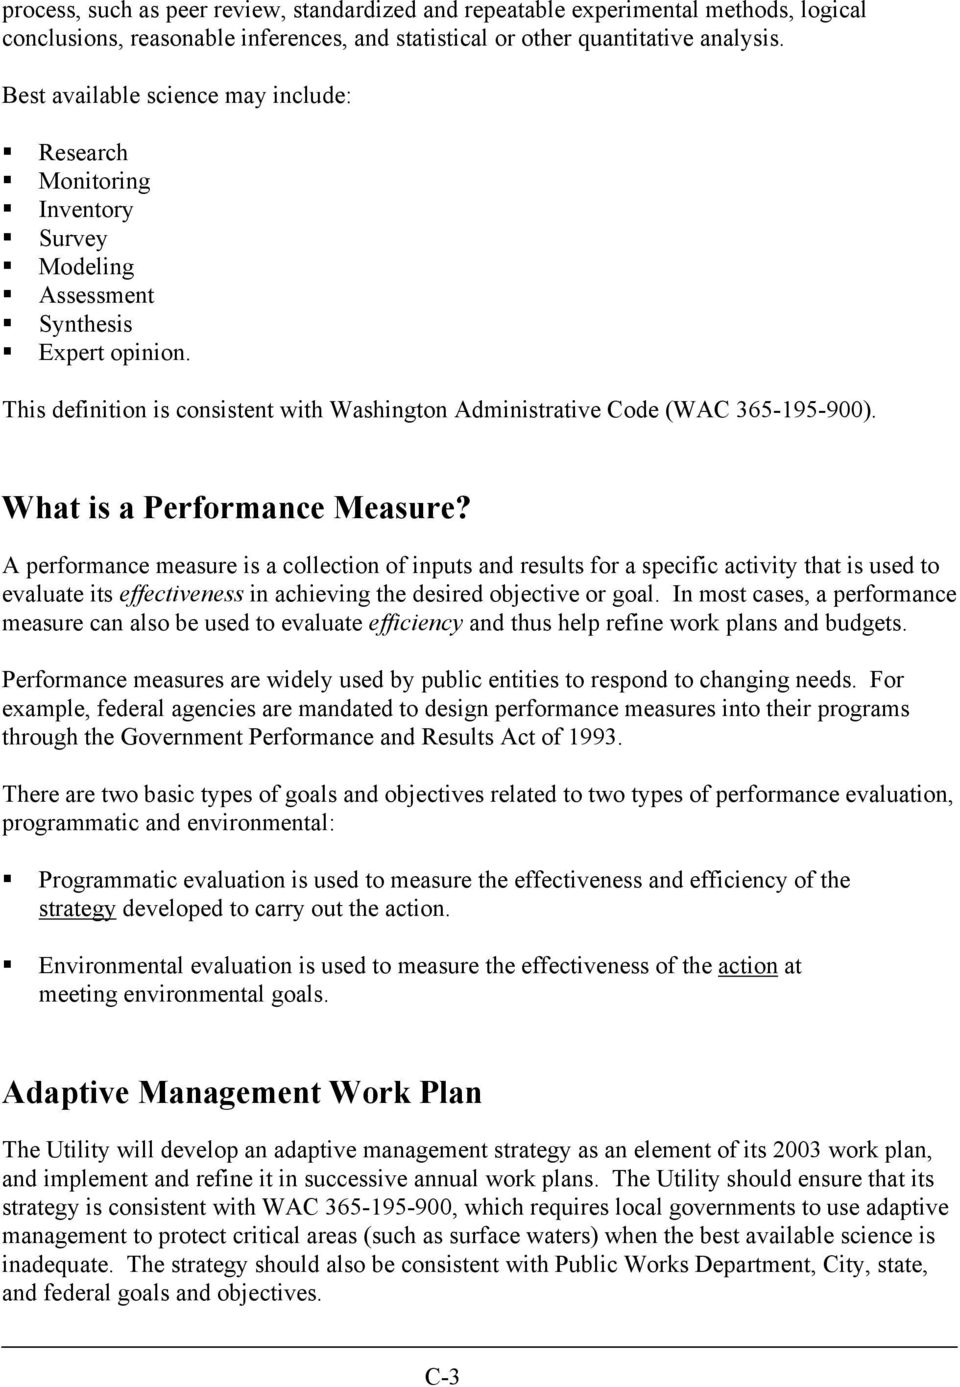 This definition is consistent with Washington Administrative Code (WAC 365-195-900). What is a Performance Measure?